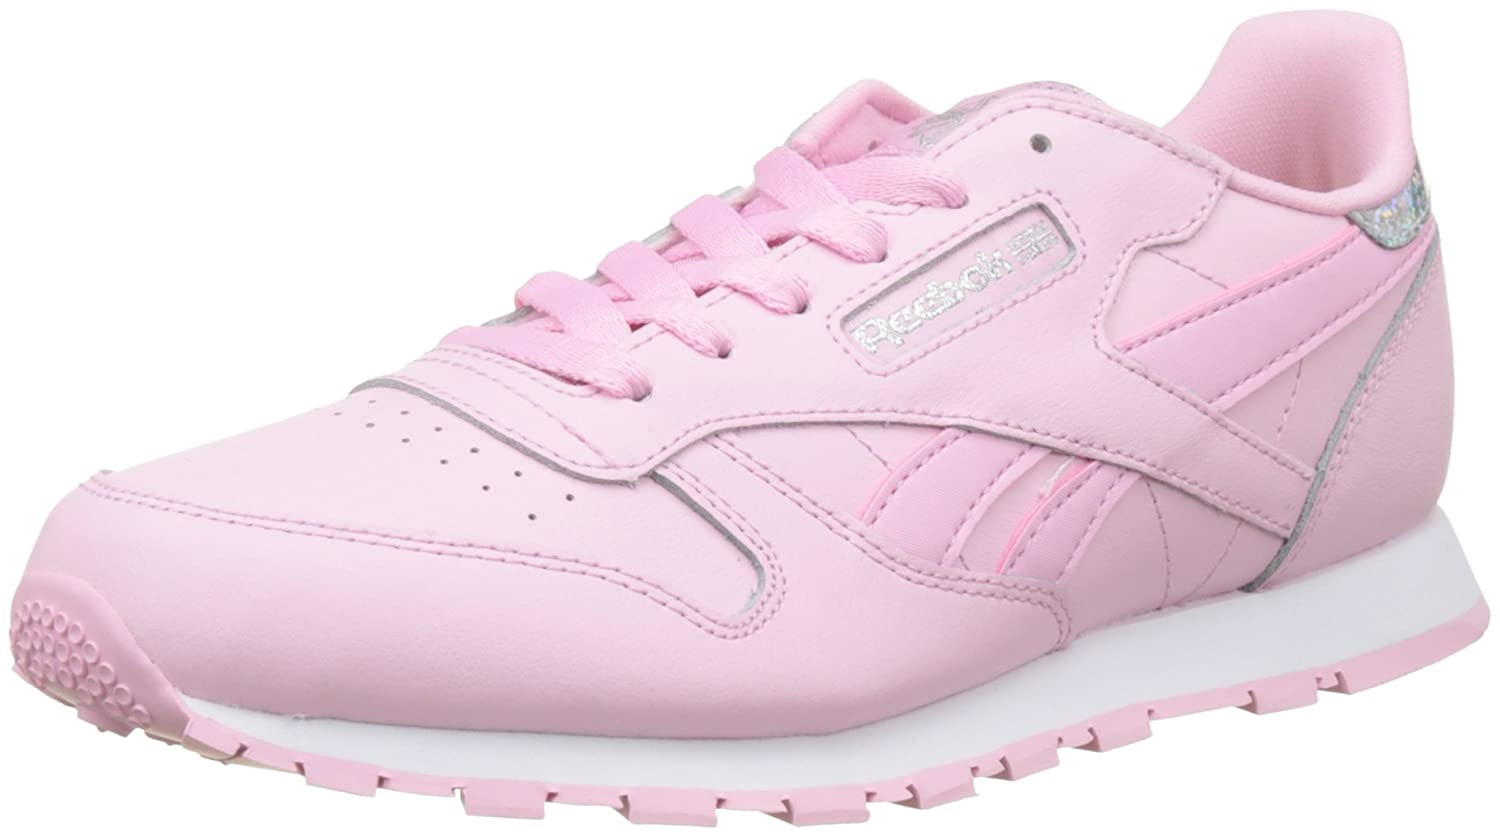 Reebok Classic Leather Pastel Zapatillas para Niñas